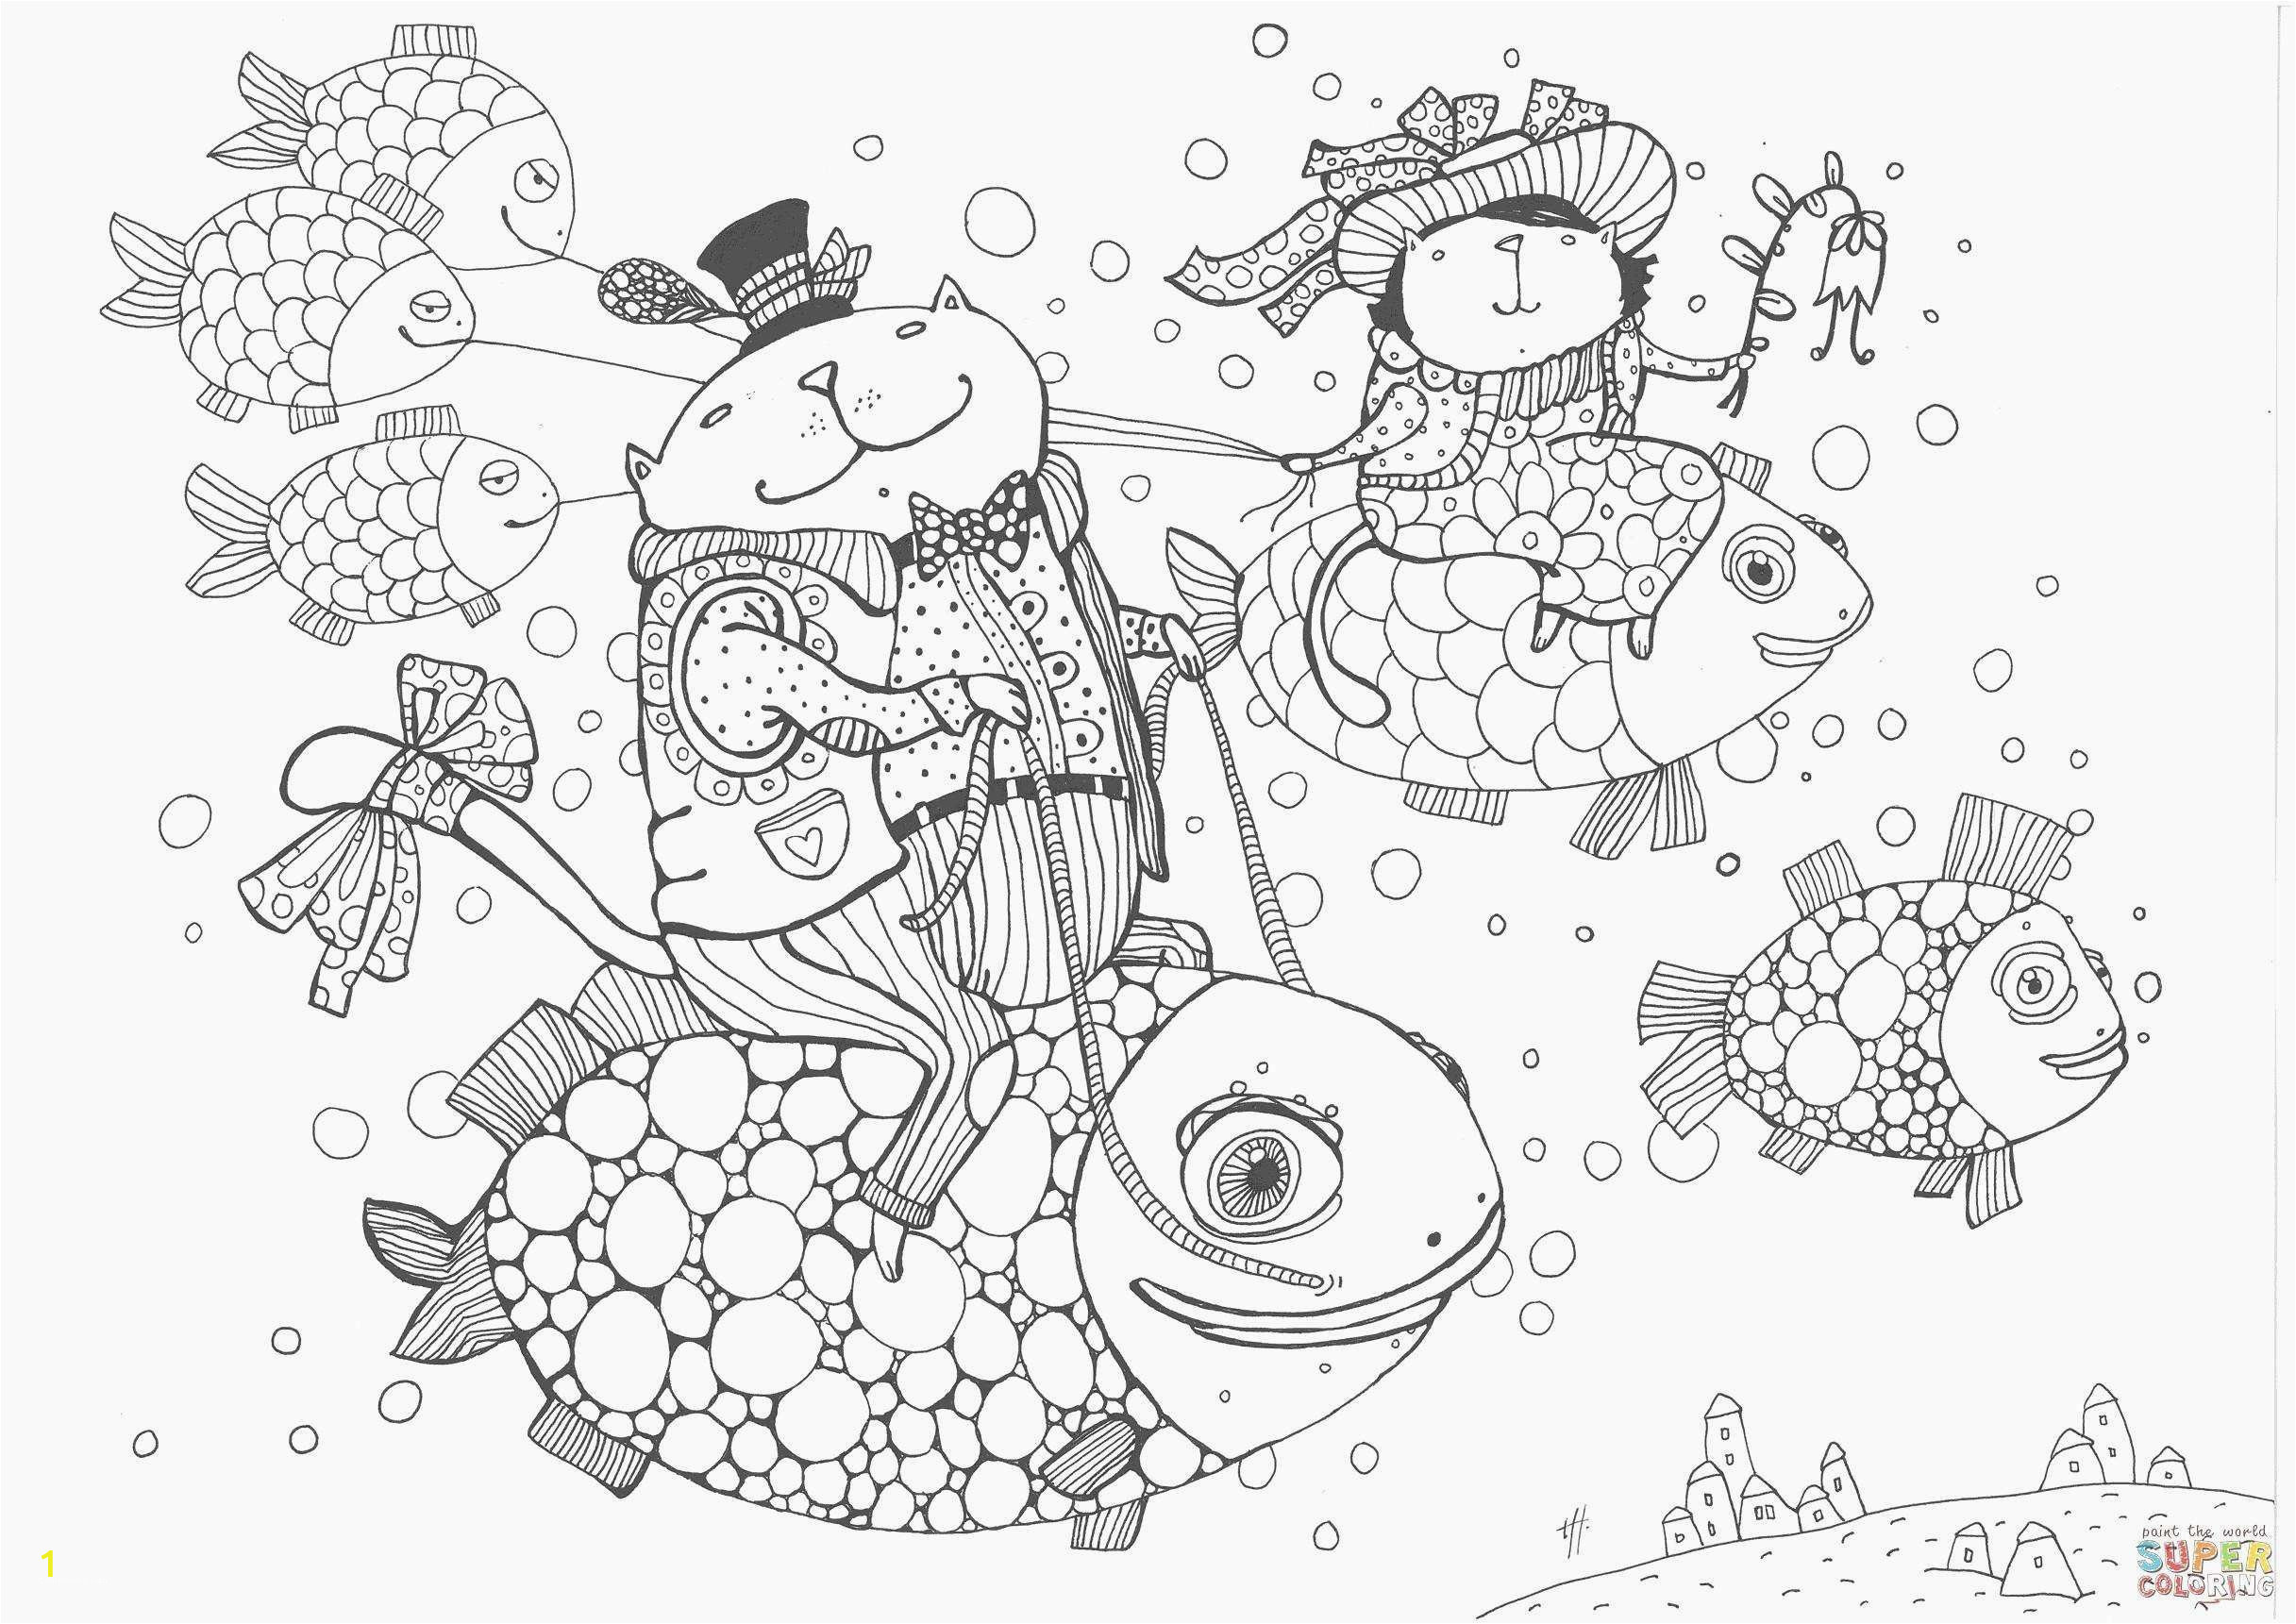 coloring pages for middle school students awesome coloring pages awesome image thanksgiving color by of coloring pages for middle school students